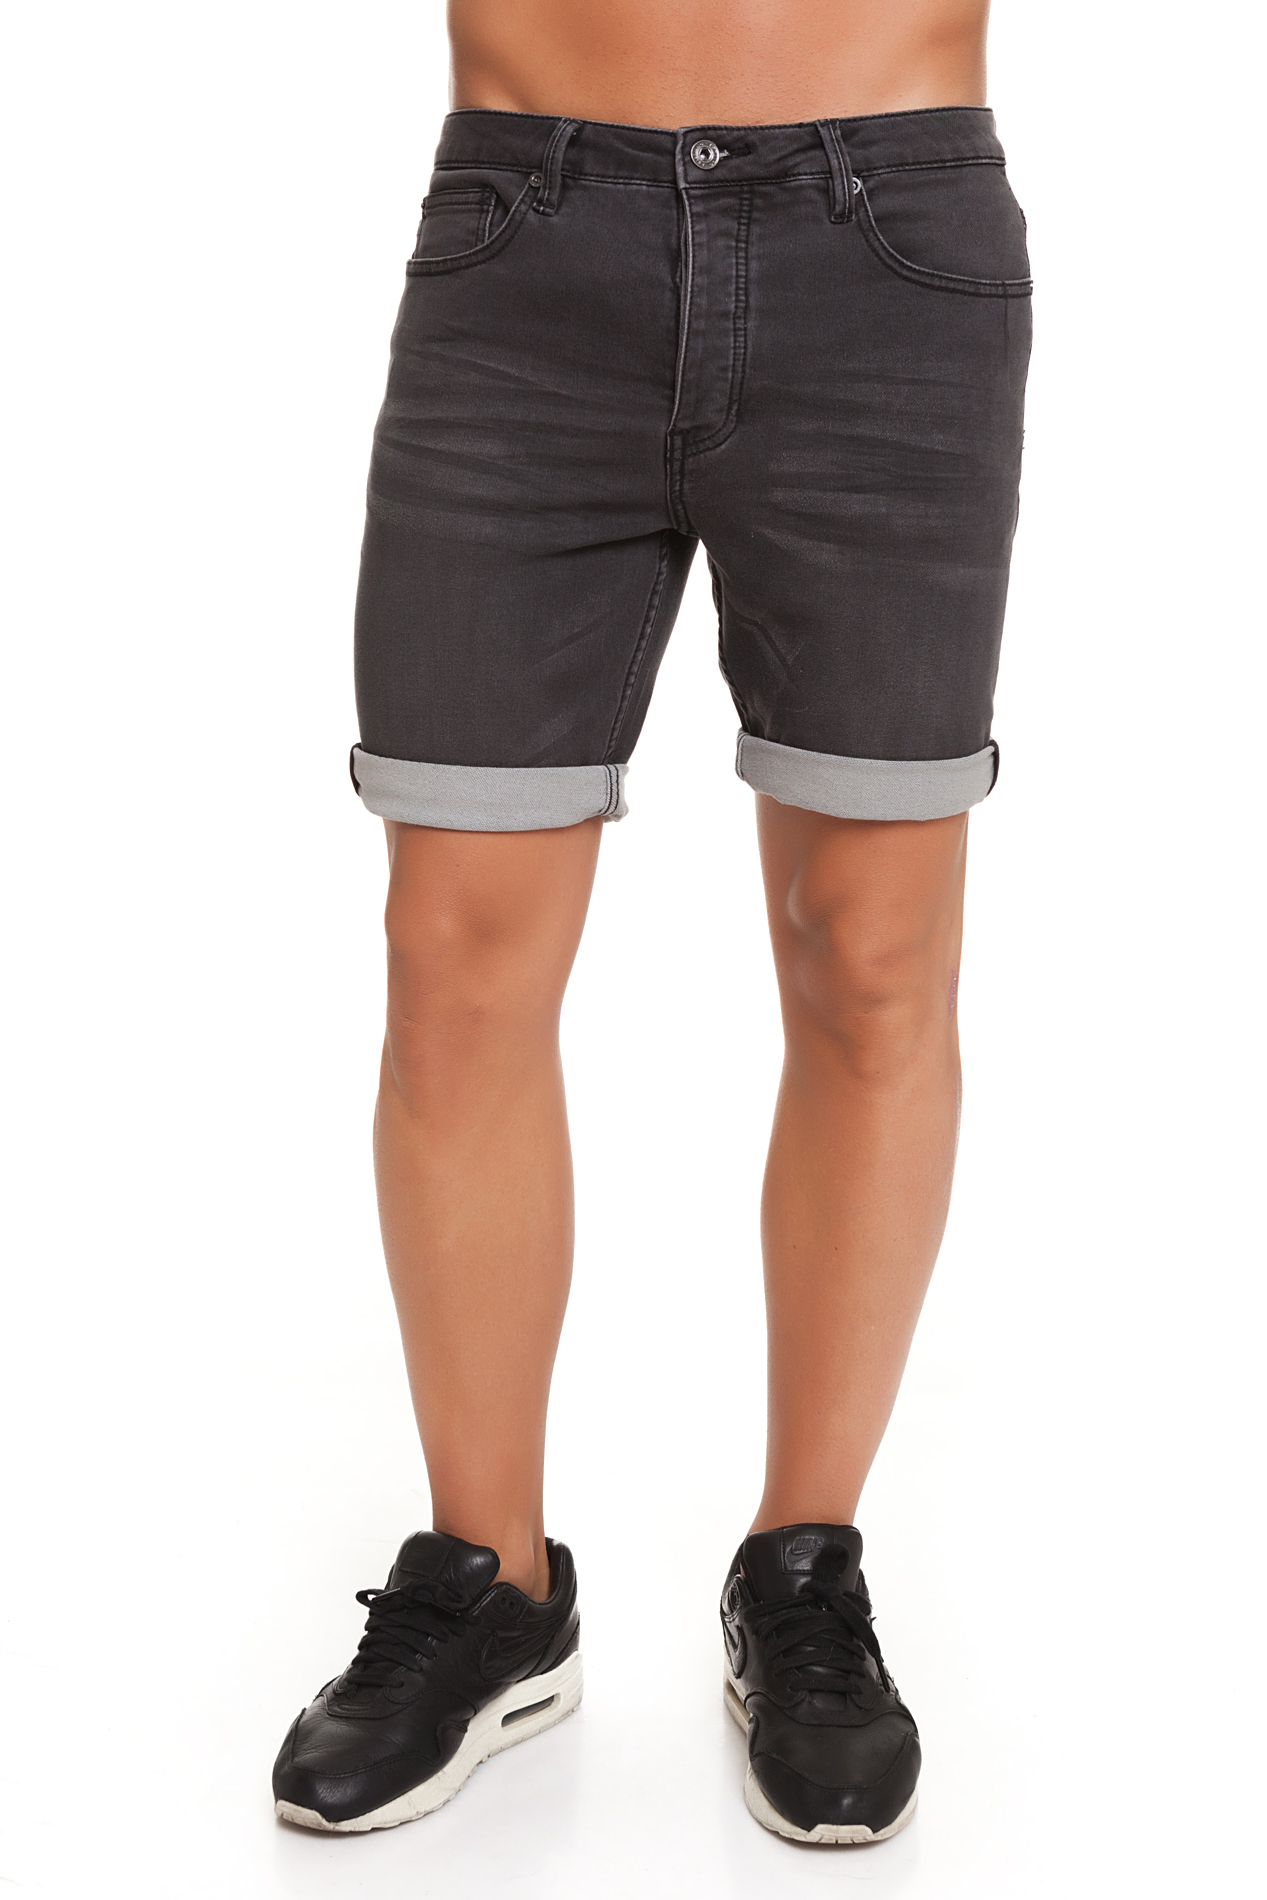 CR7 Trousers Short For Men Color Dark Grey Casual Causal Vaquros Short Female Ro Corta CRD046A